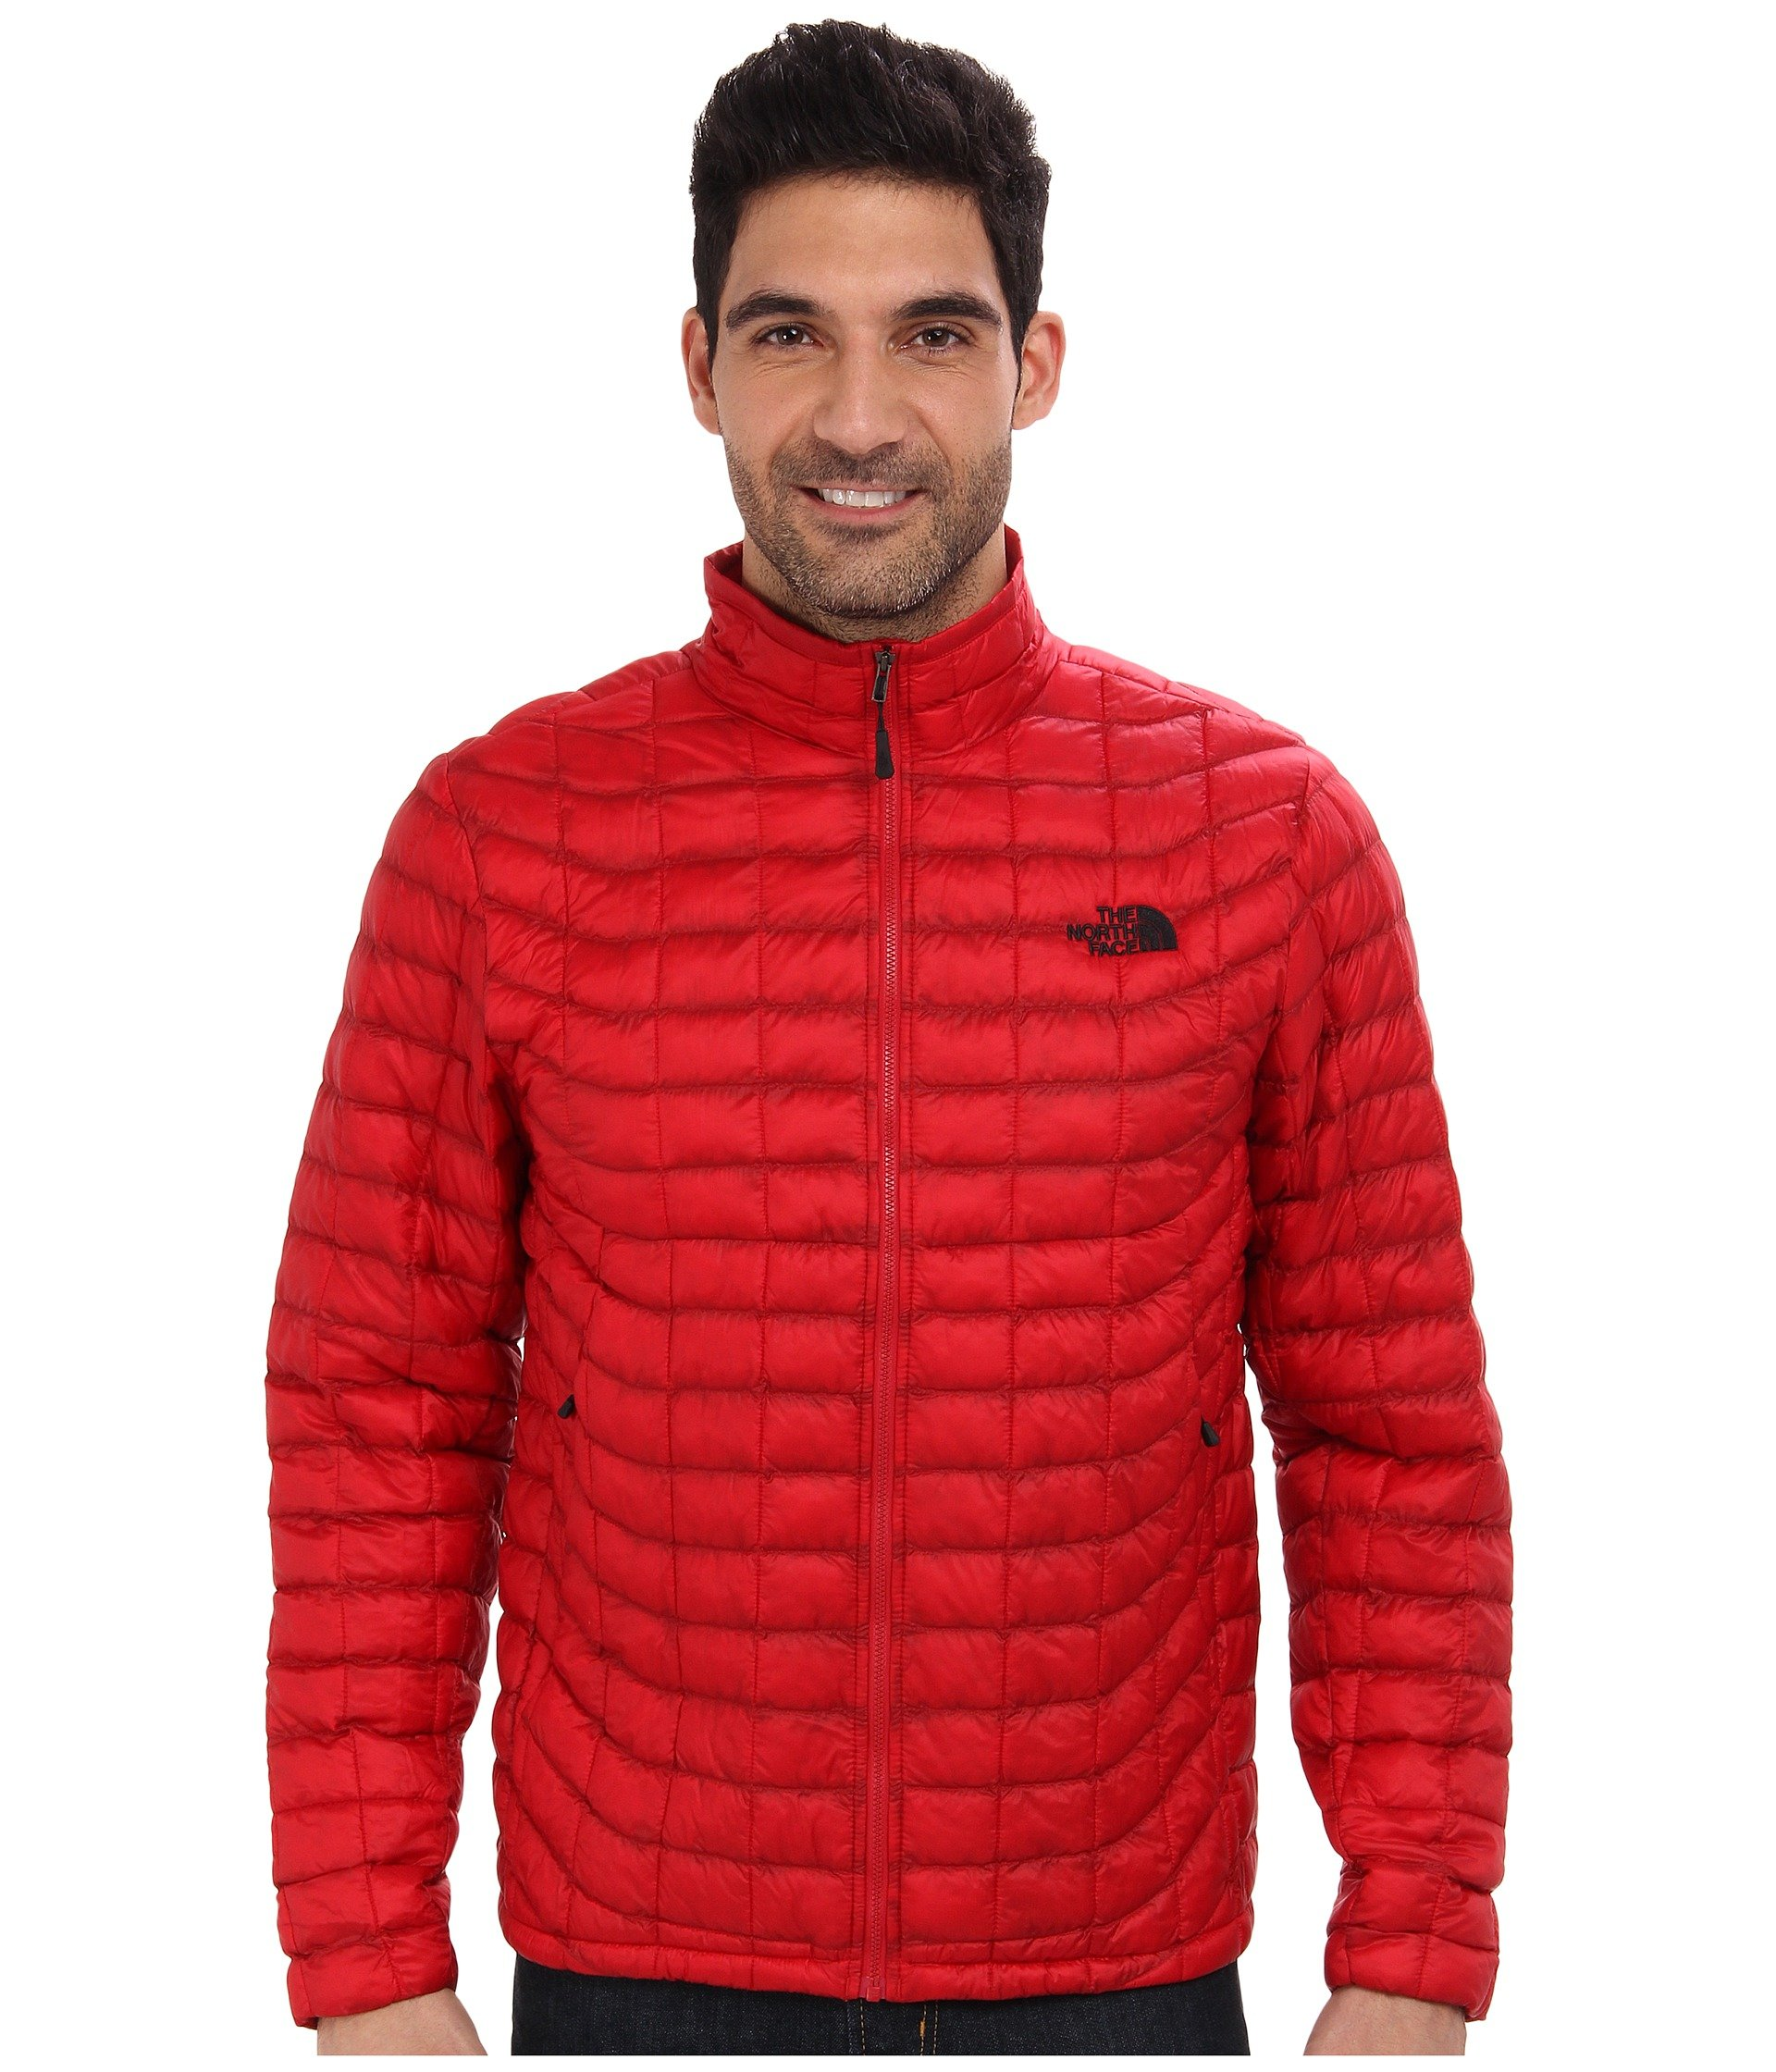 0a7cdff6b2ae The North Face Thermoball™ Full-Zip Jacket In Rage Red